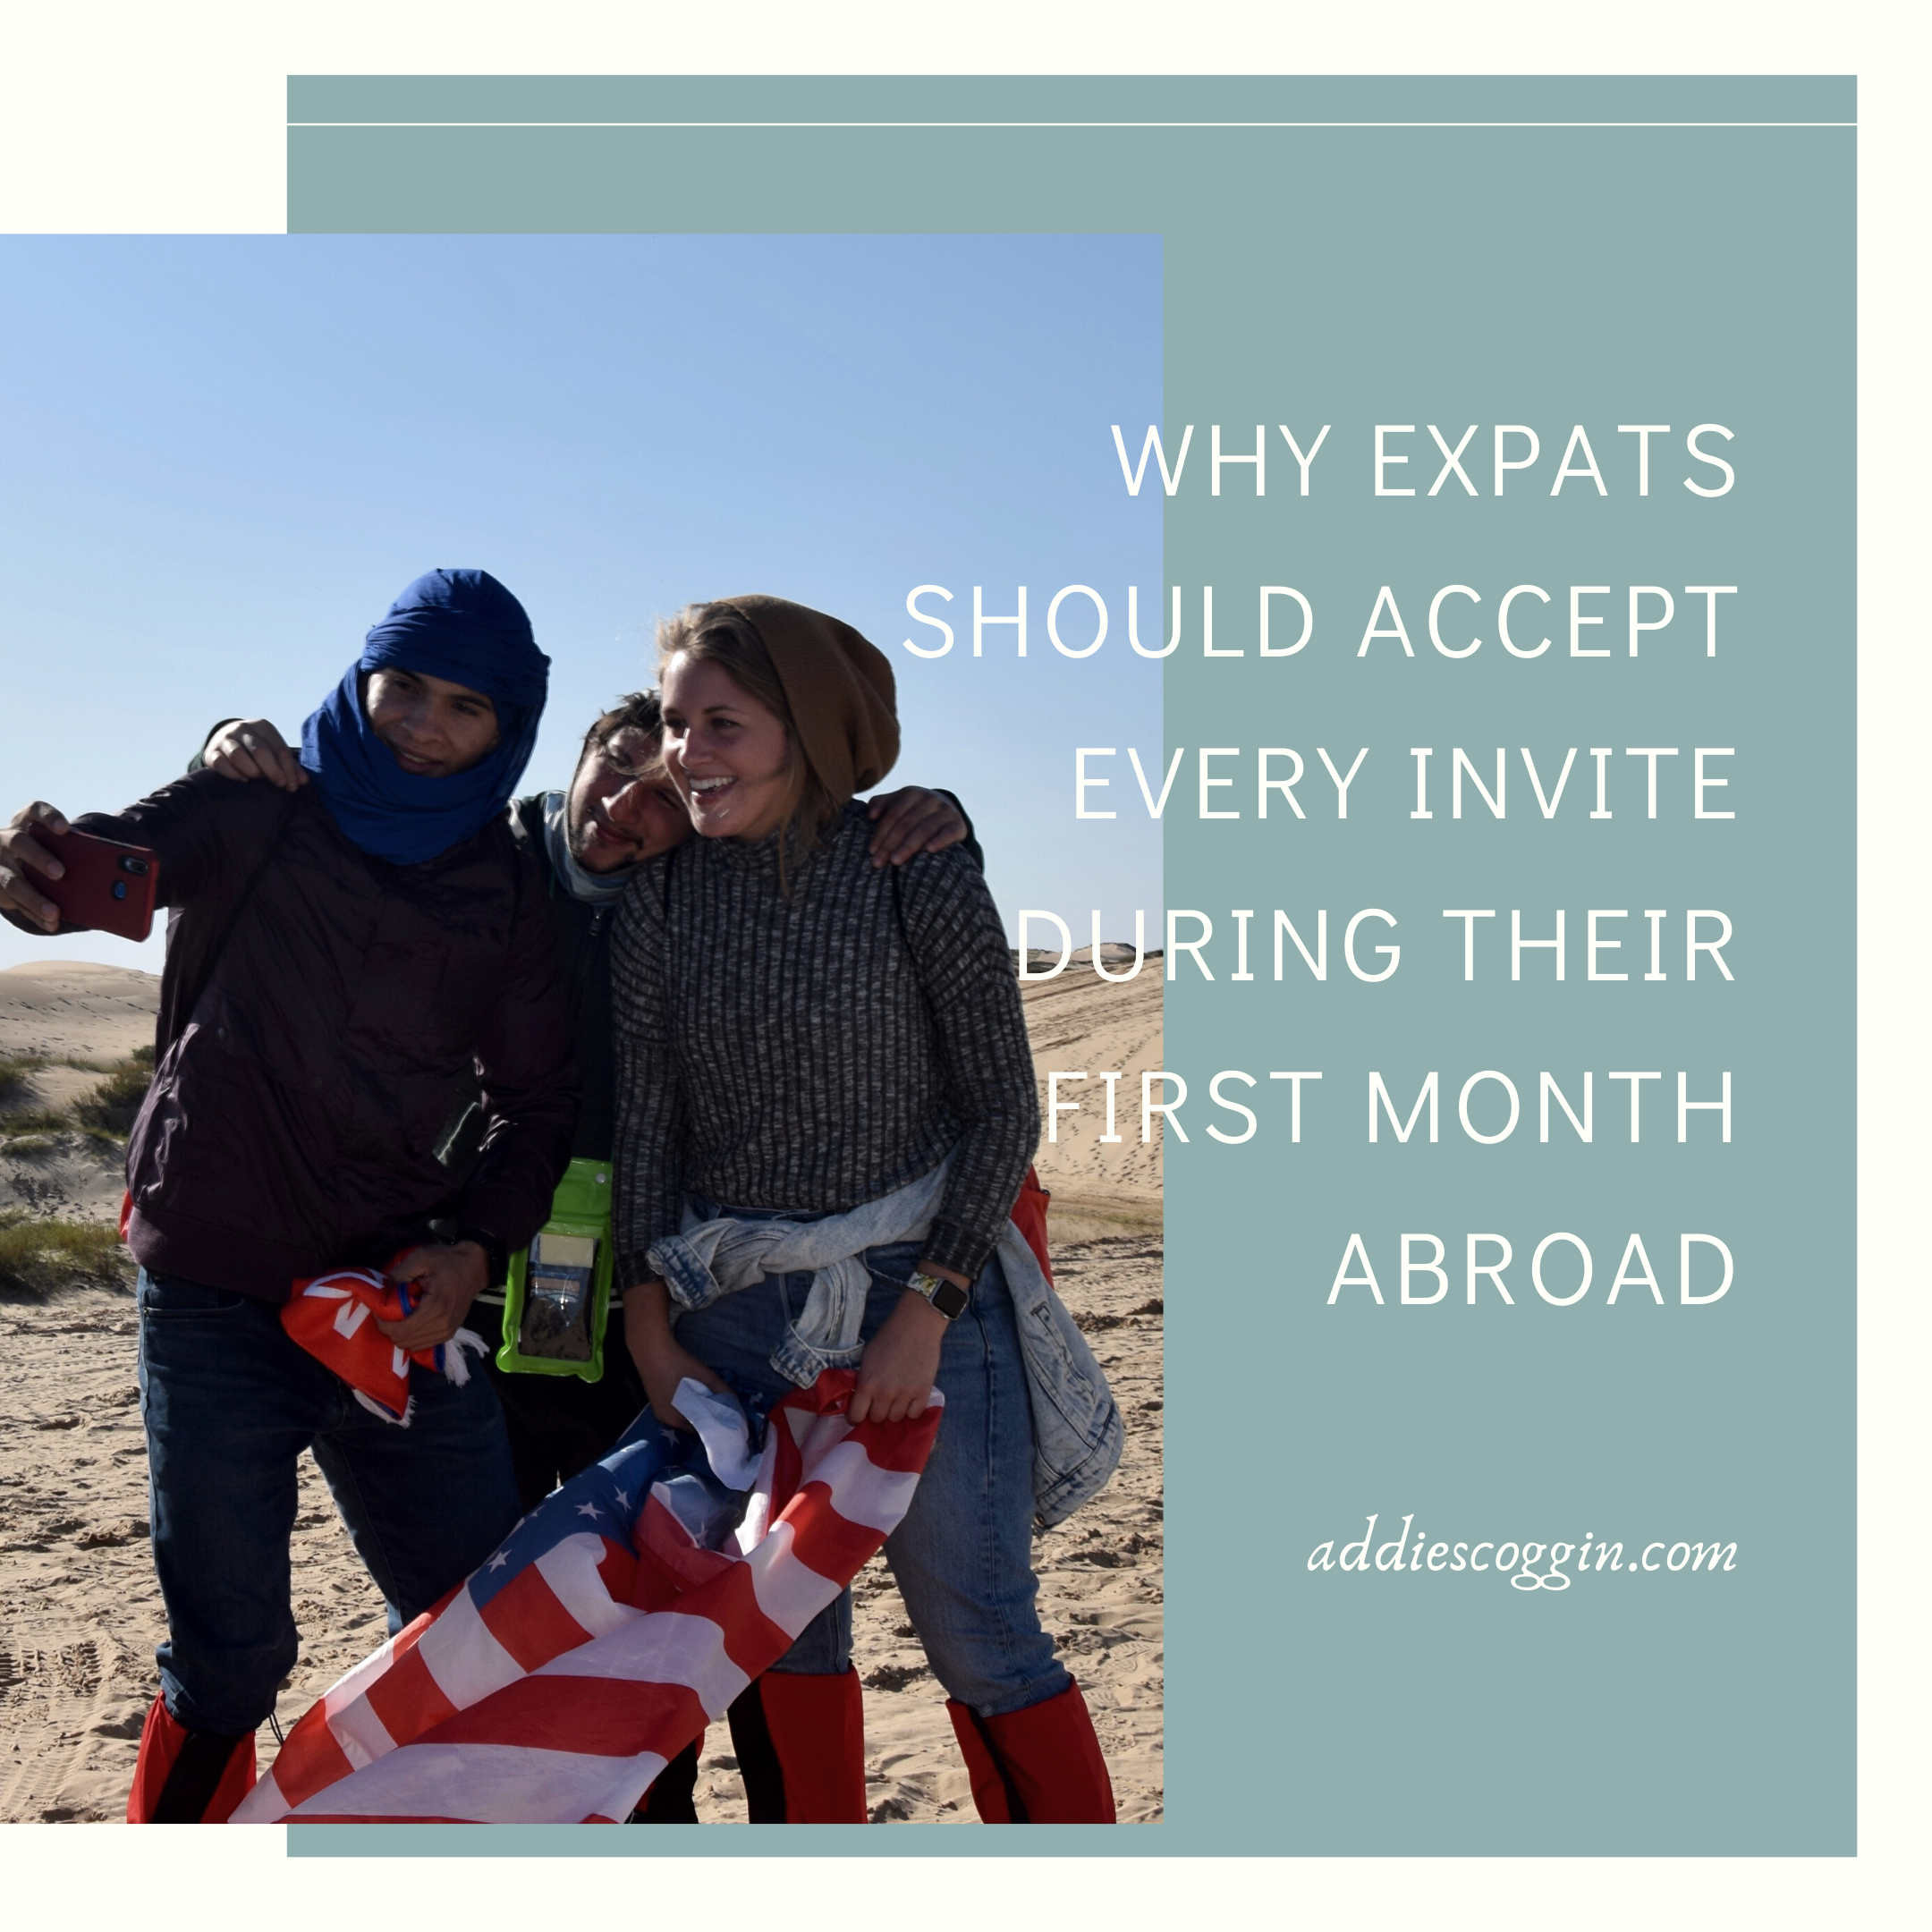 Why Expats Should Accept Every Invite During Their First Month Abroad